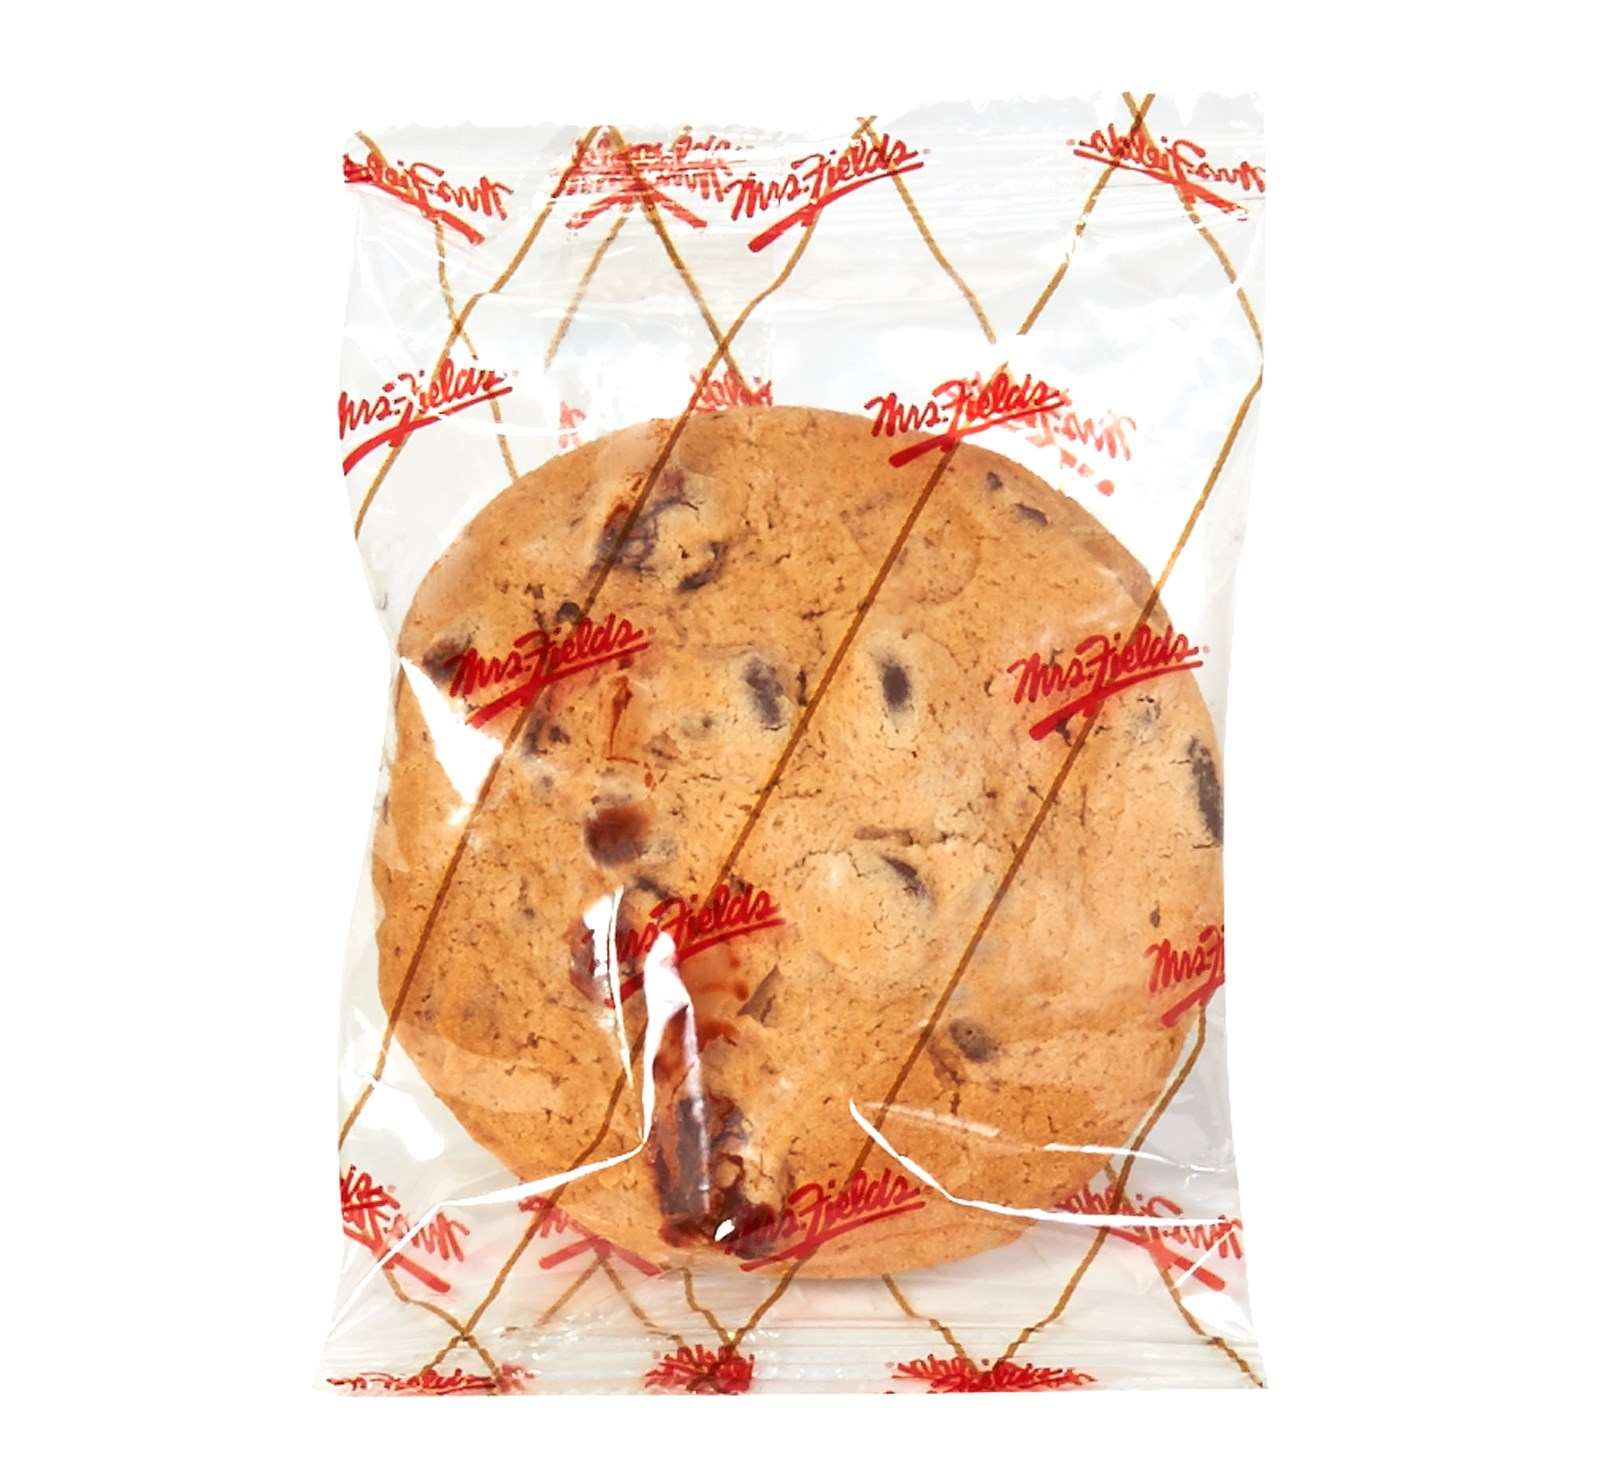 Image of Mrs. Fields Chocolate Chip Cookie (1)